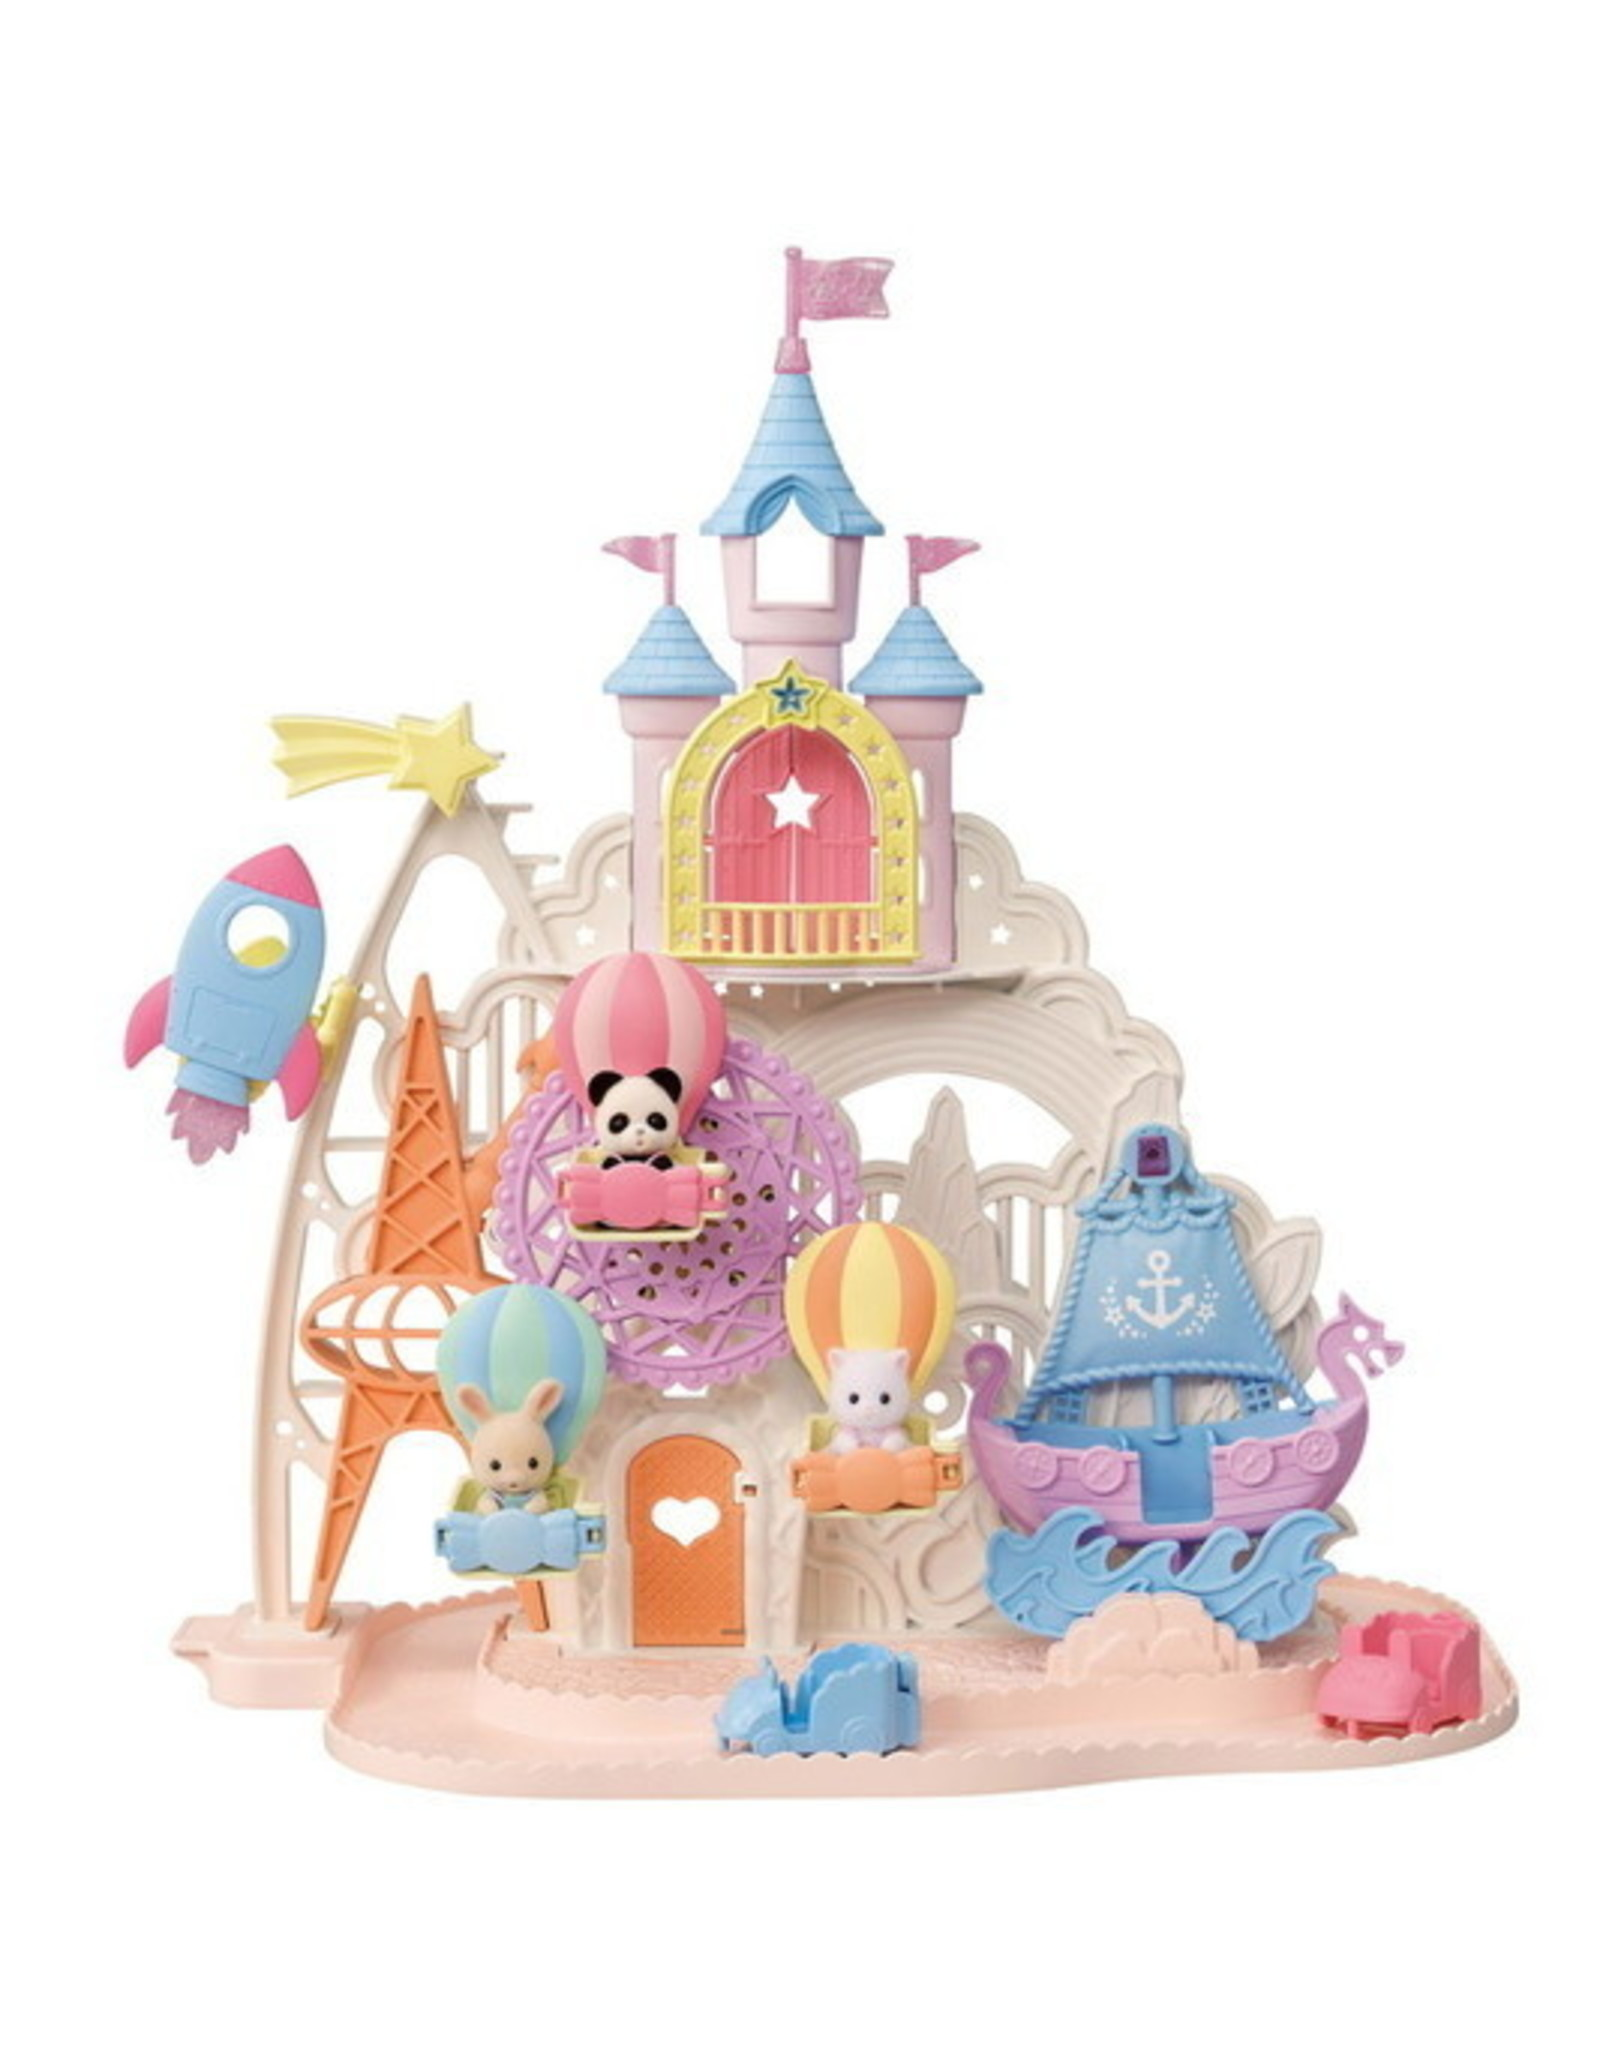 Calico Critters Calico Critters Baby Amusement Park